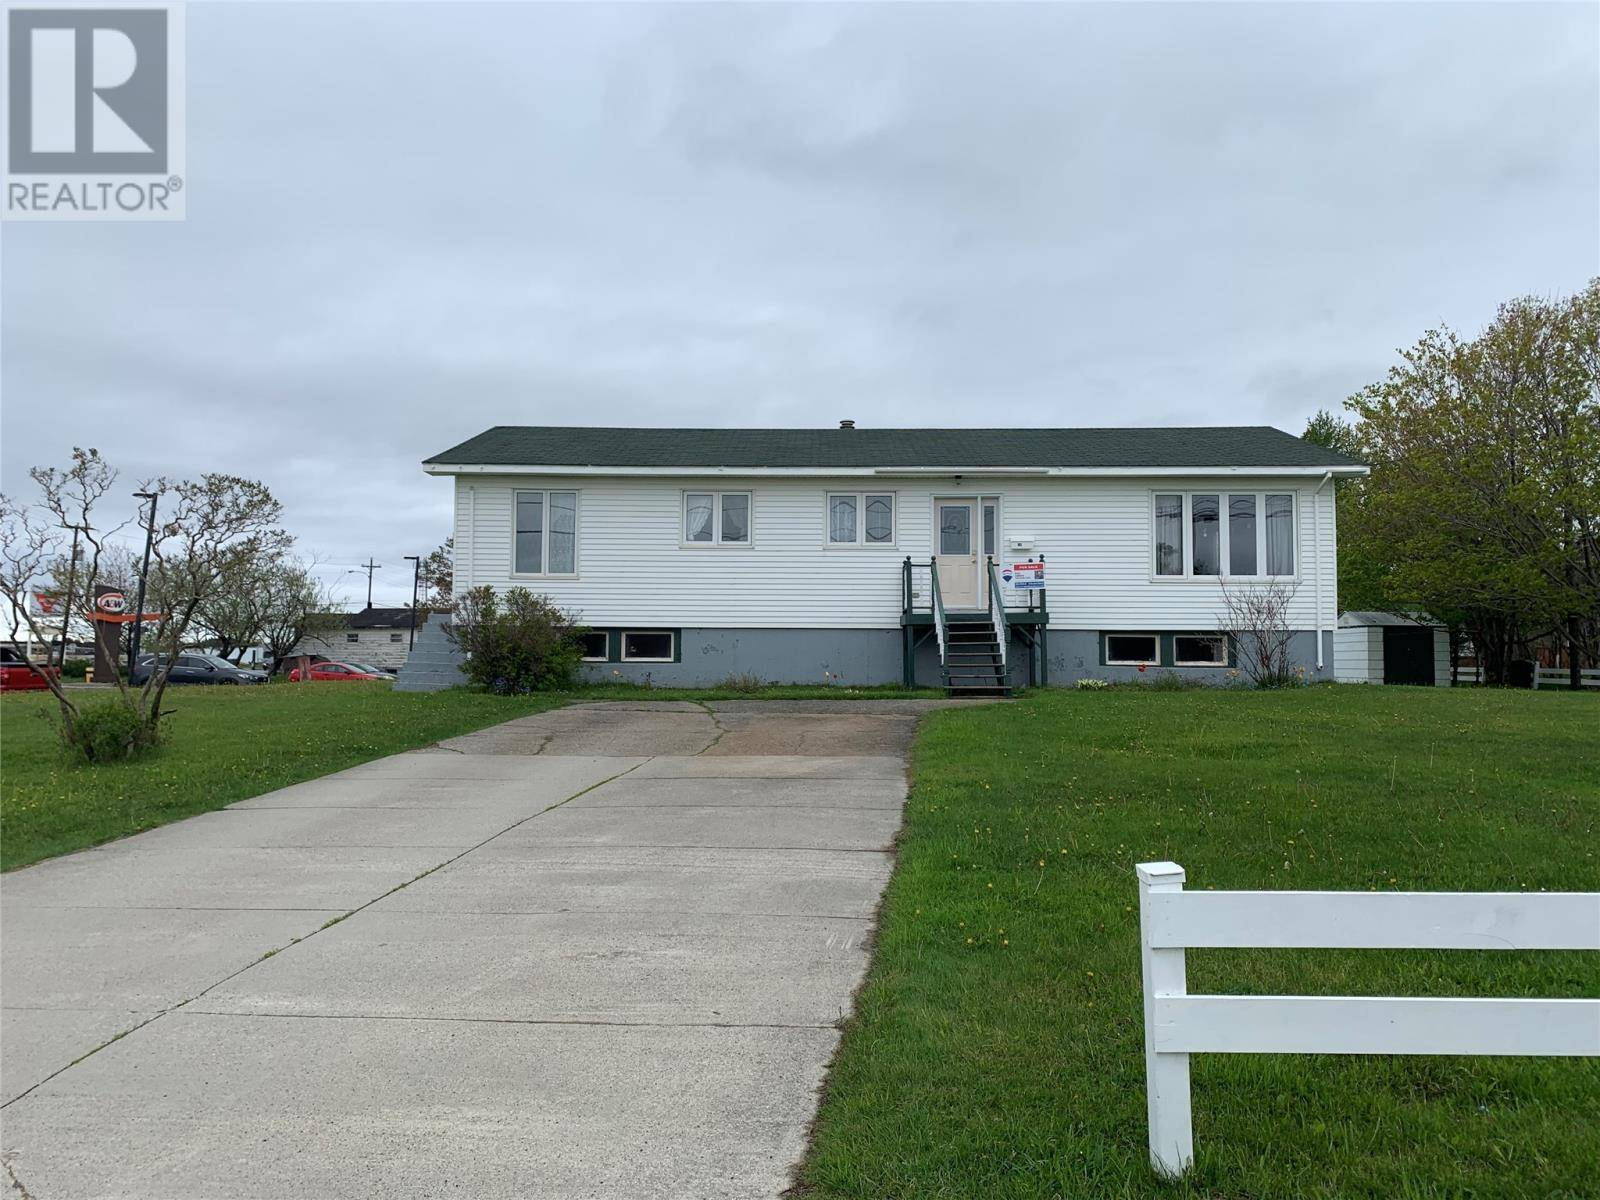 House for sale at 45 Queen St Unit 49 Stephenville Newfoundland - MLS: 1192419